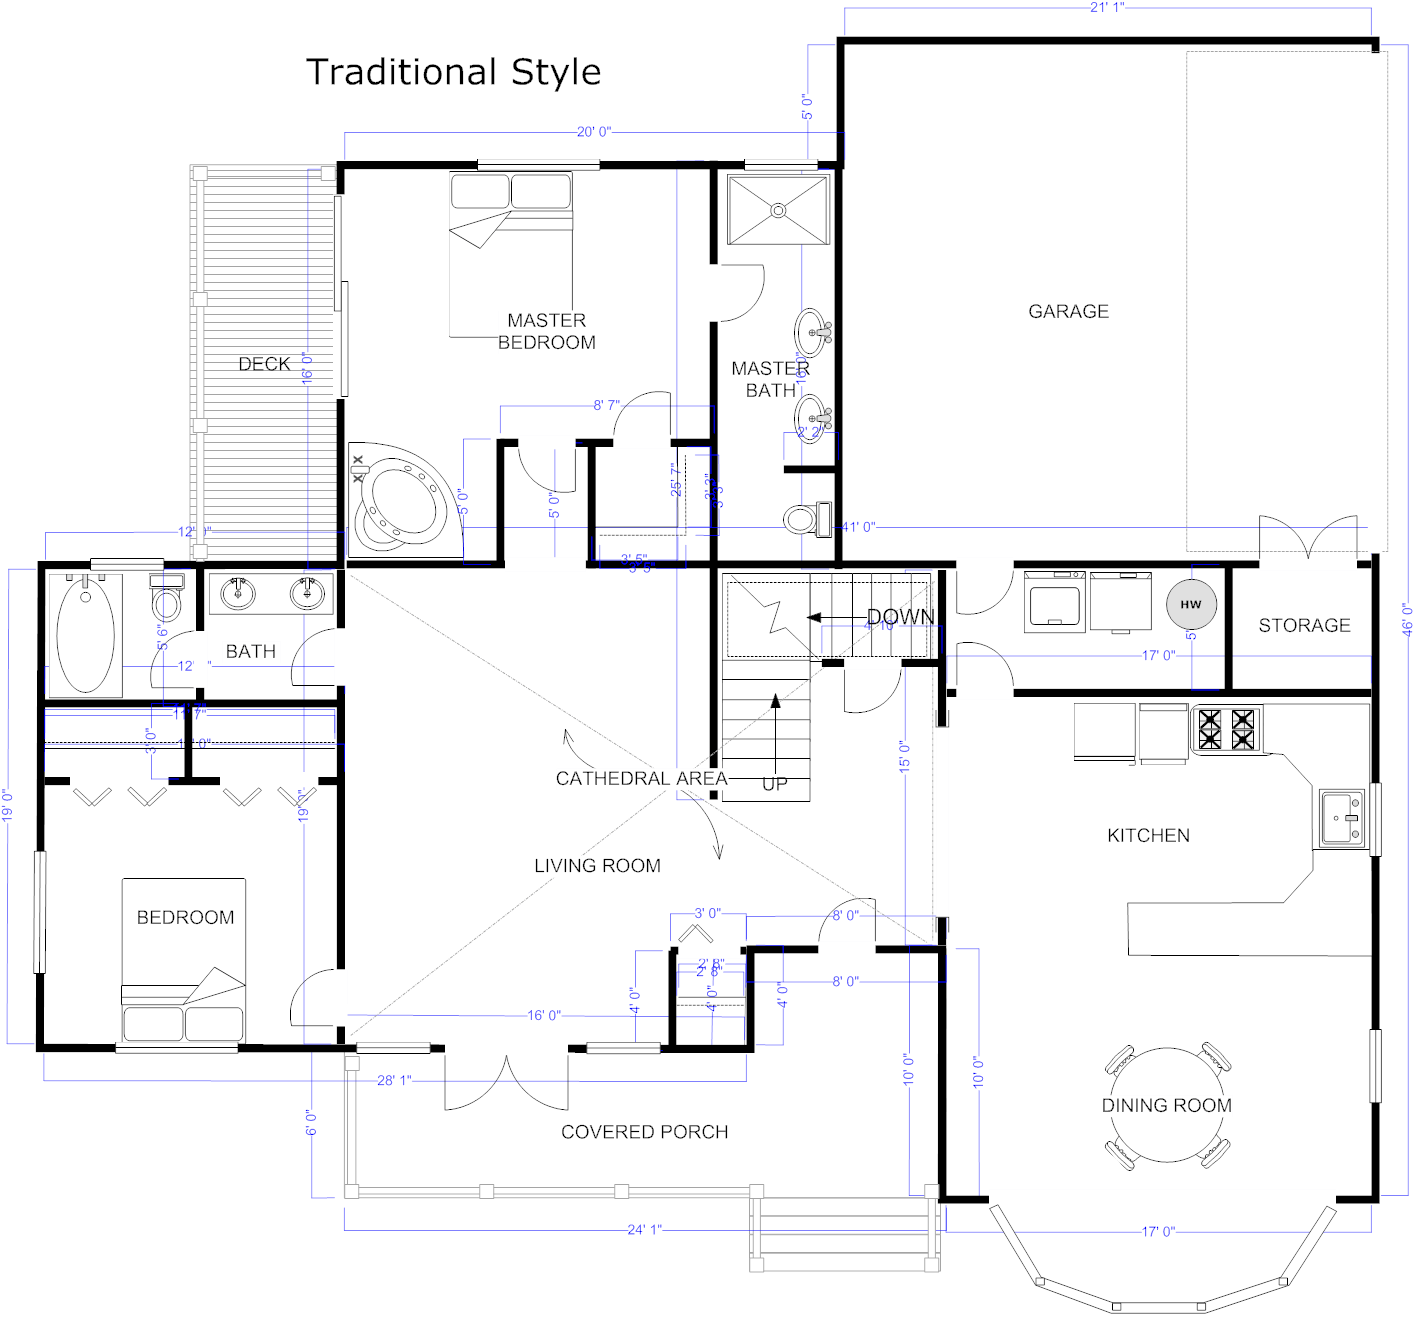 Floor plan maker draw floor plans with floor plan templates Online floor plan maker